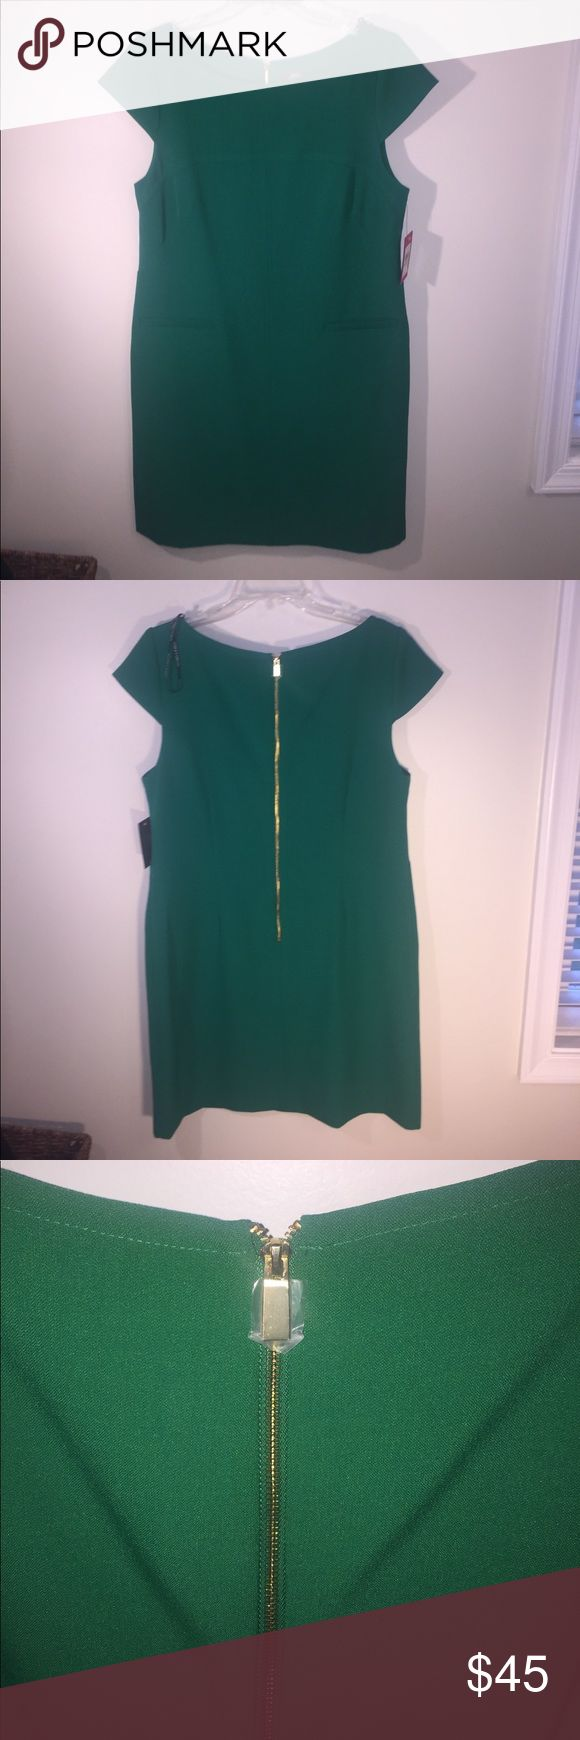 "NEW Vince Camuto Sz 12 Kelly Green Dress NEW Vince Camuto Gorgeous Sz 12 Kelly Green Dress w/Gold Back Zip Arm Pit to Arm pIt 18"" Across Vince Camuto Dresses Midi"